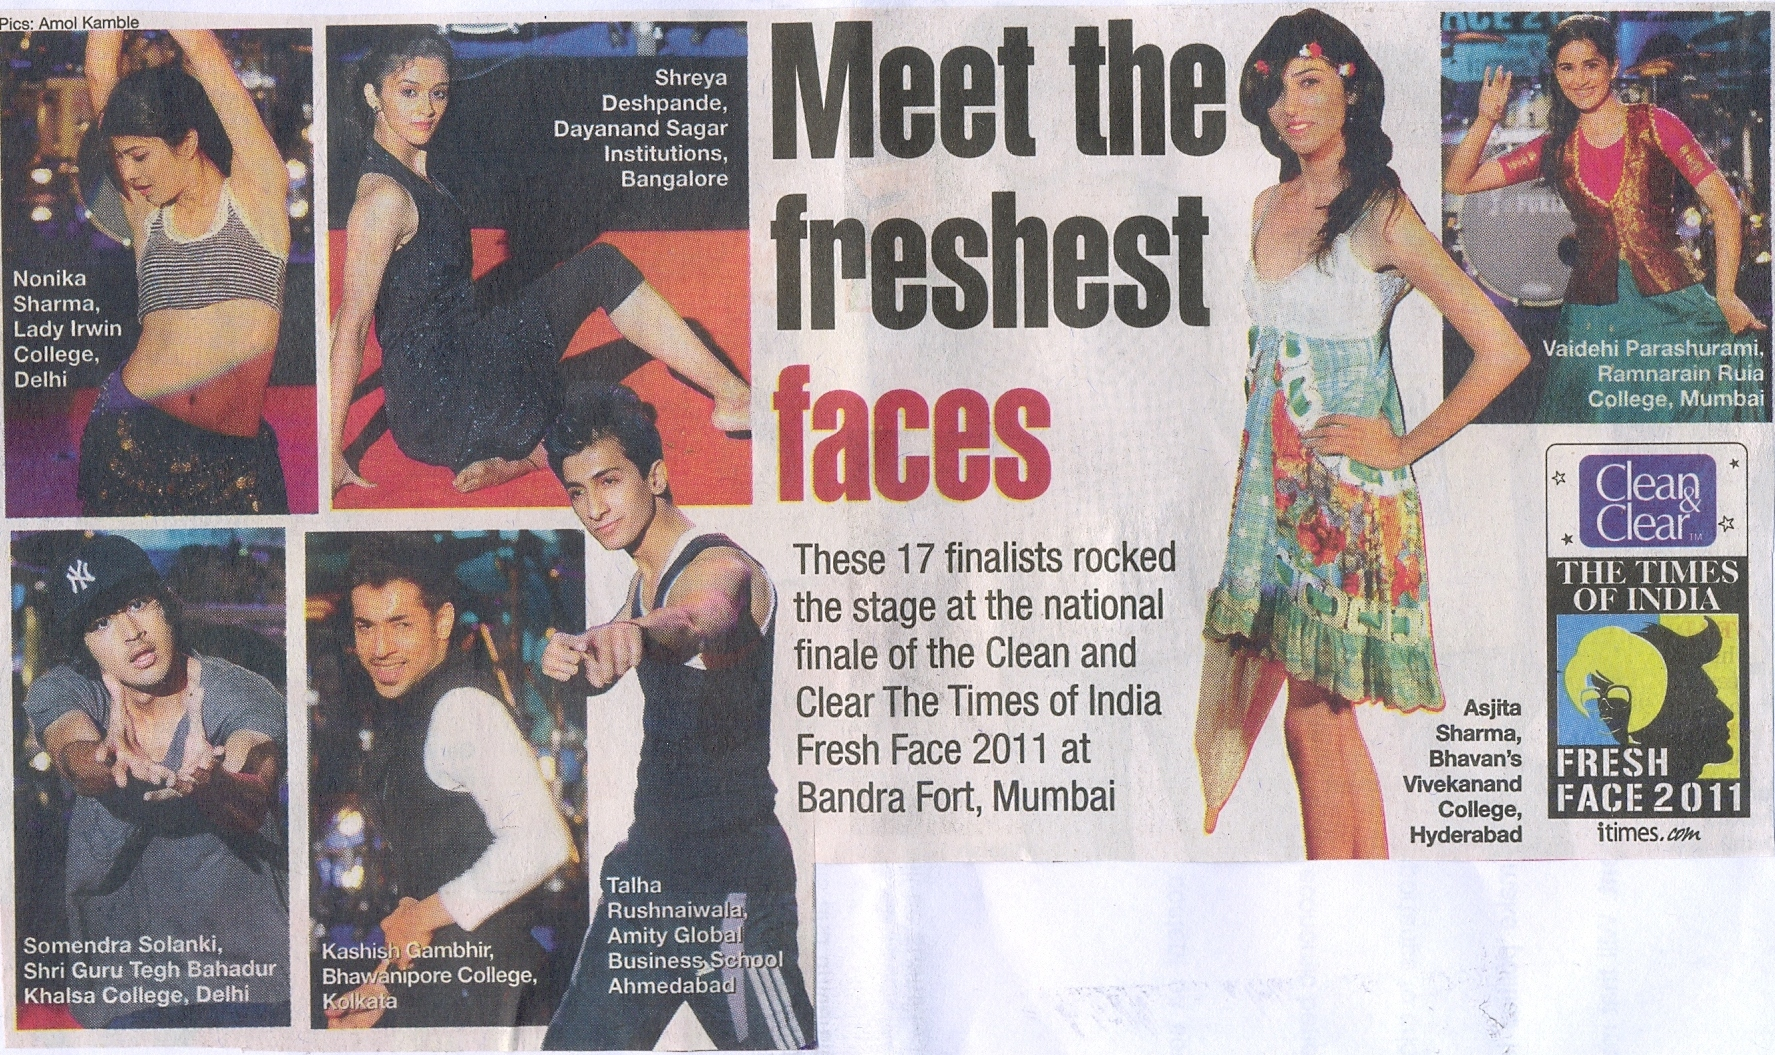 Mee the Freshest faces - Times of India Fresh Face Contest Details